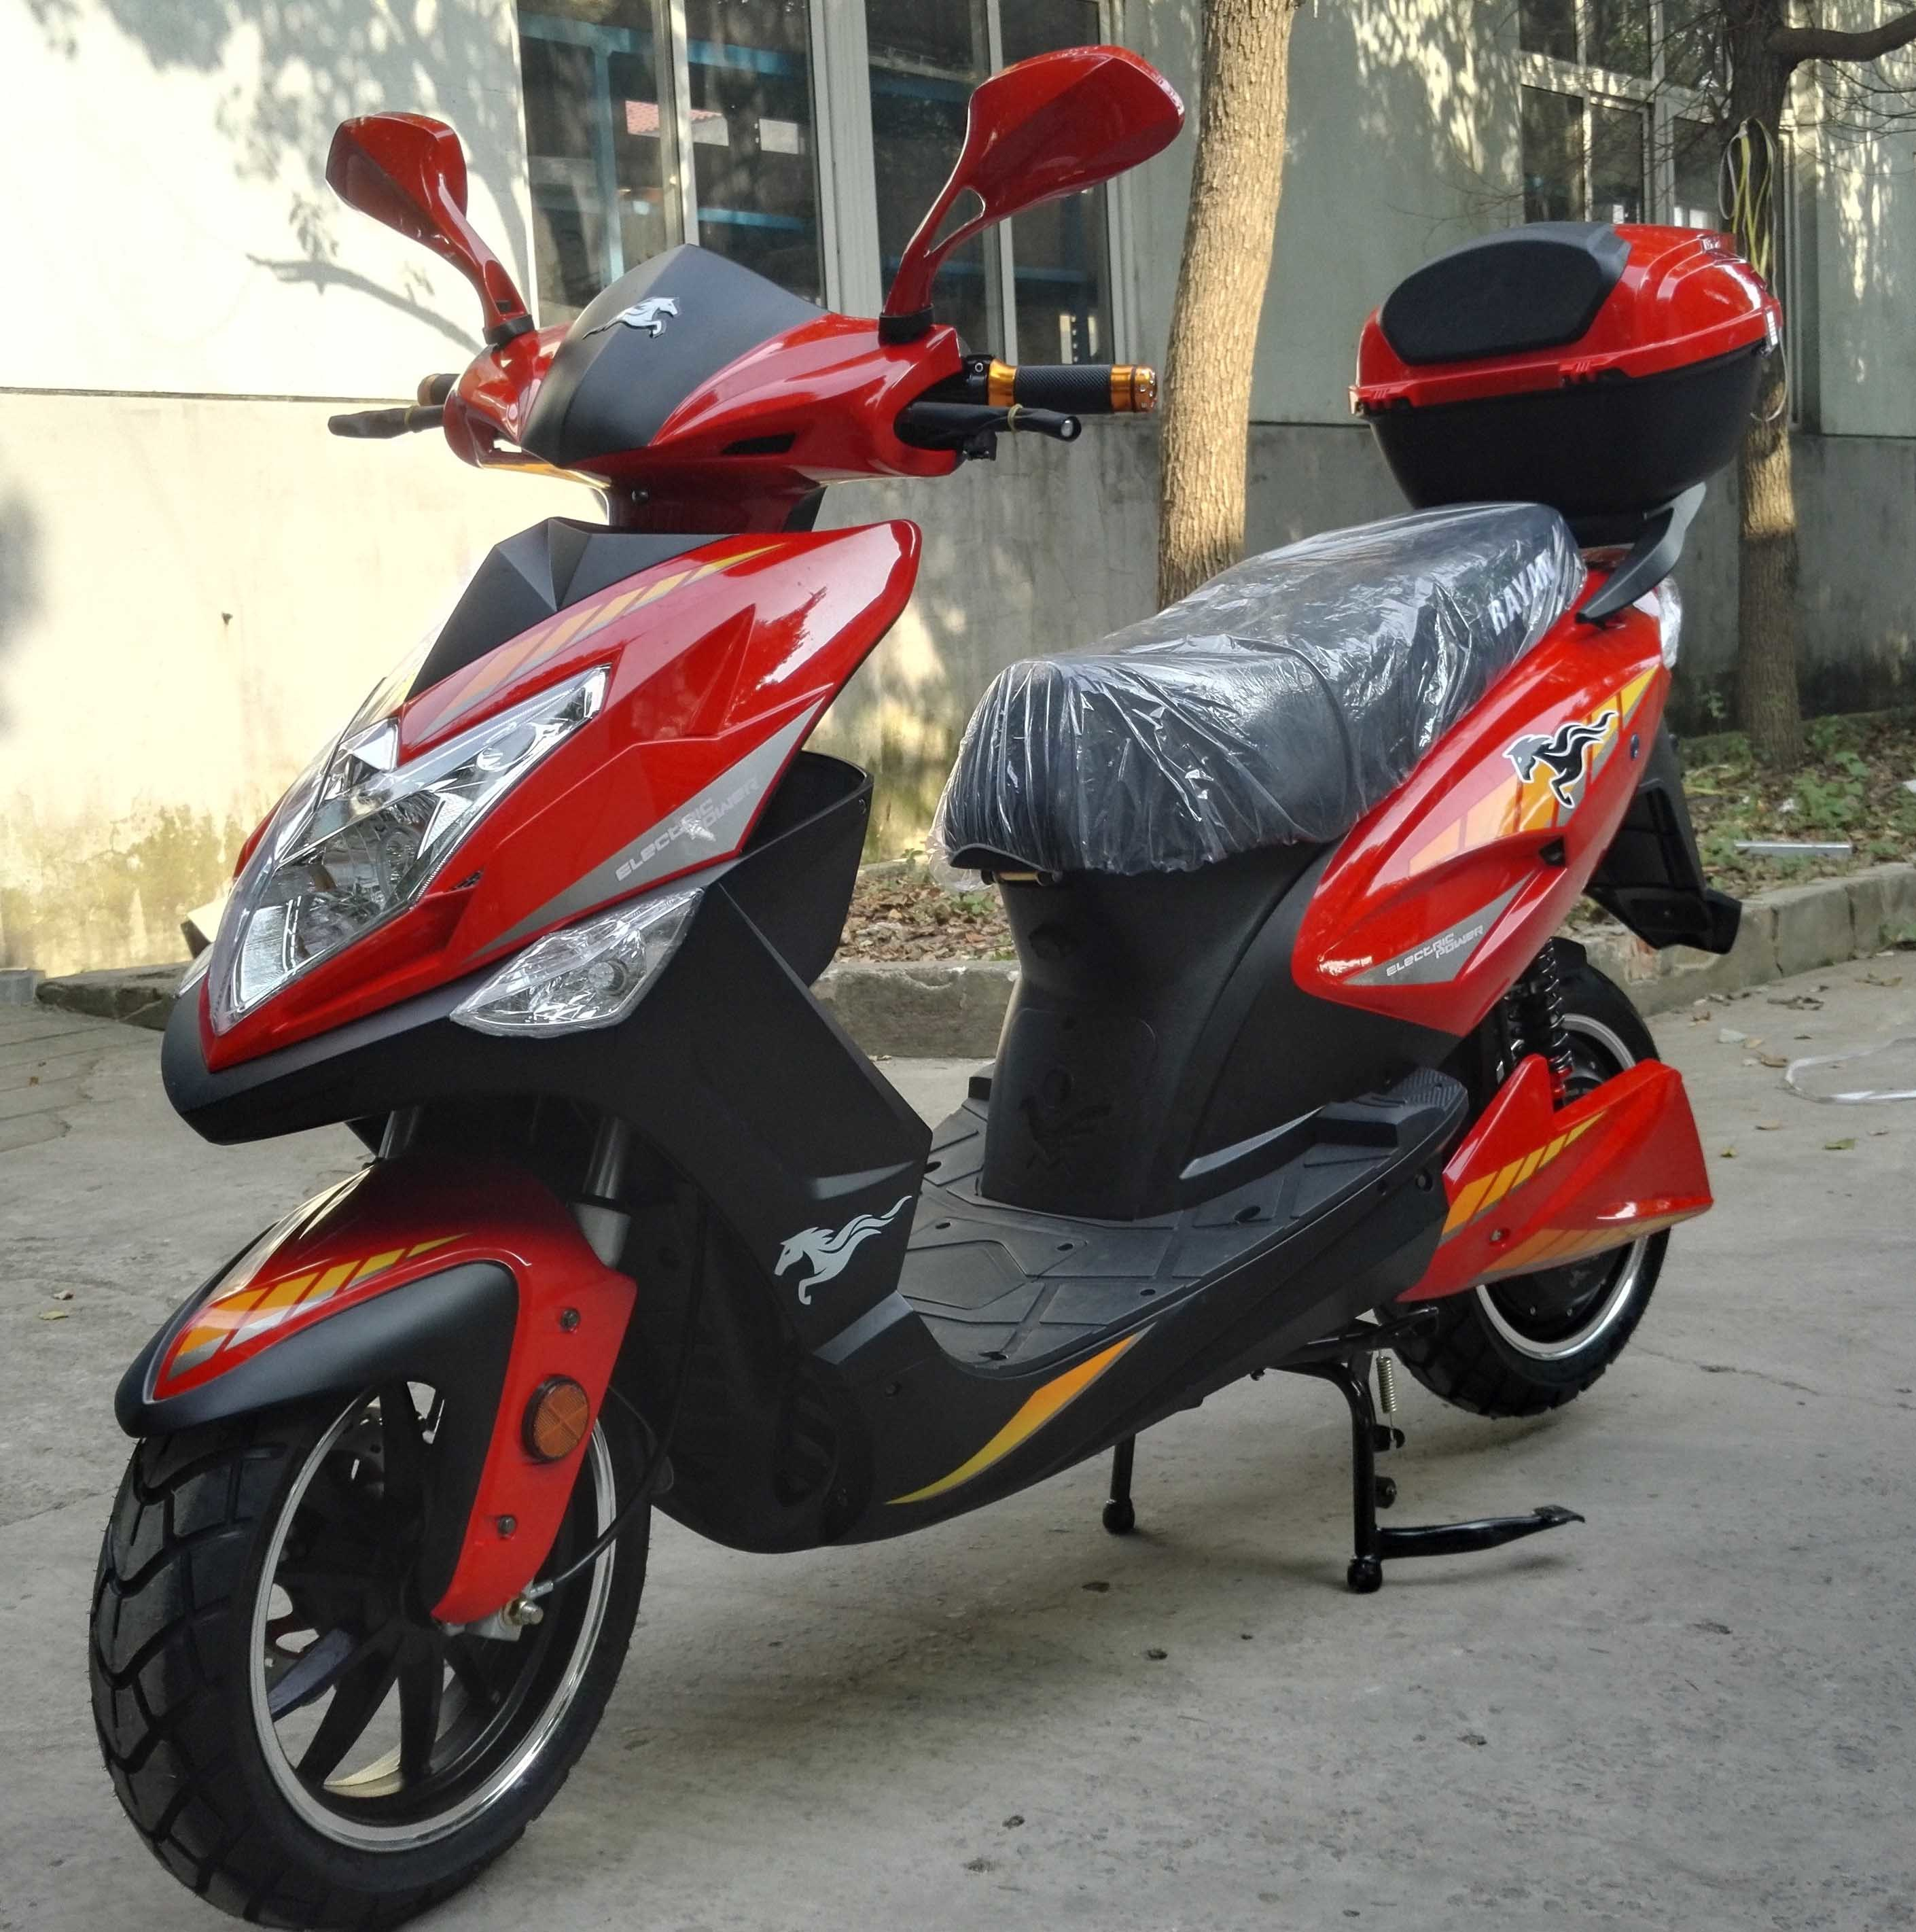 2017 Colombia and Mexico Fashion Hot Sales 72V1500W/200W/2500W Electric Motorcycl to South America